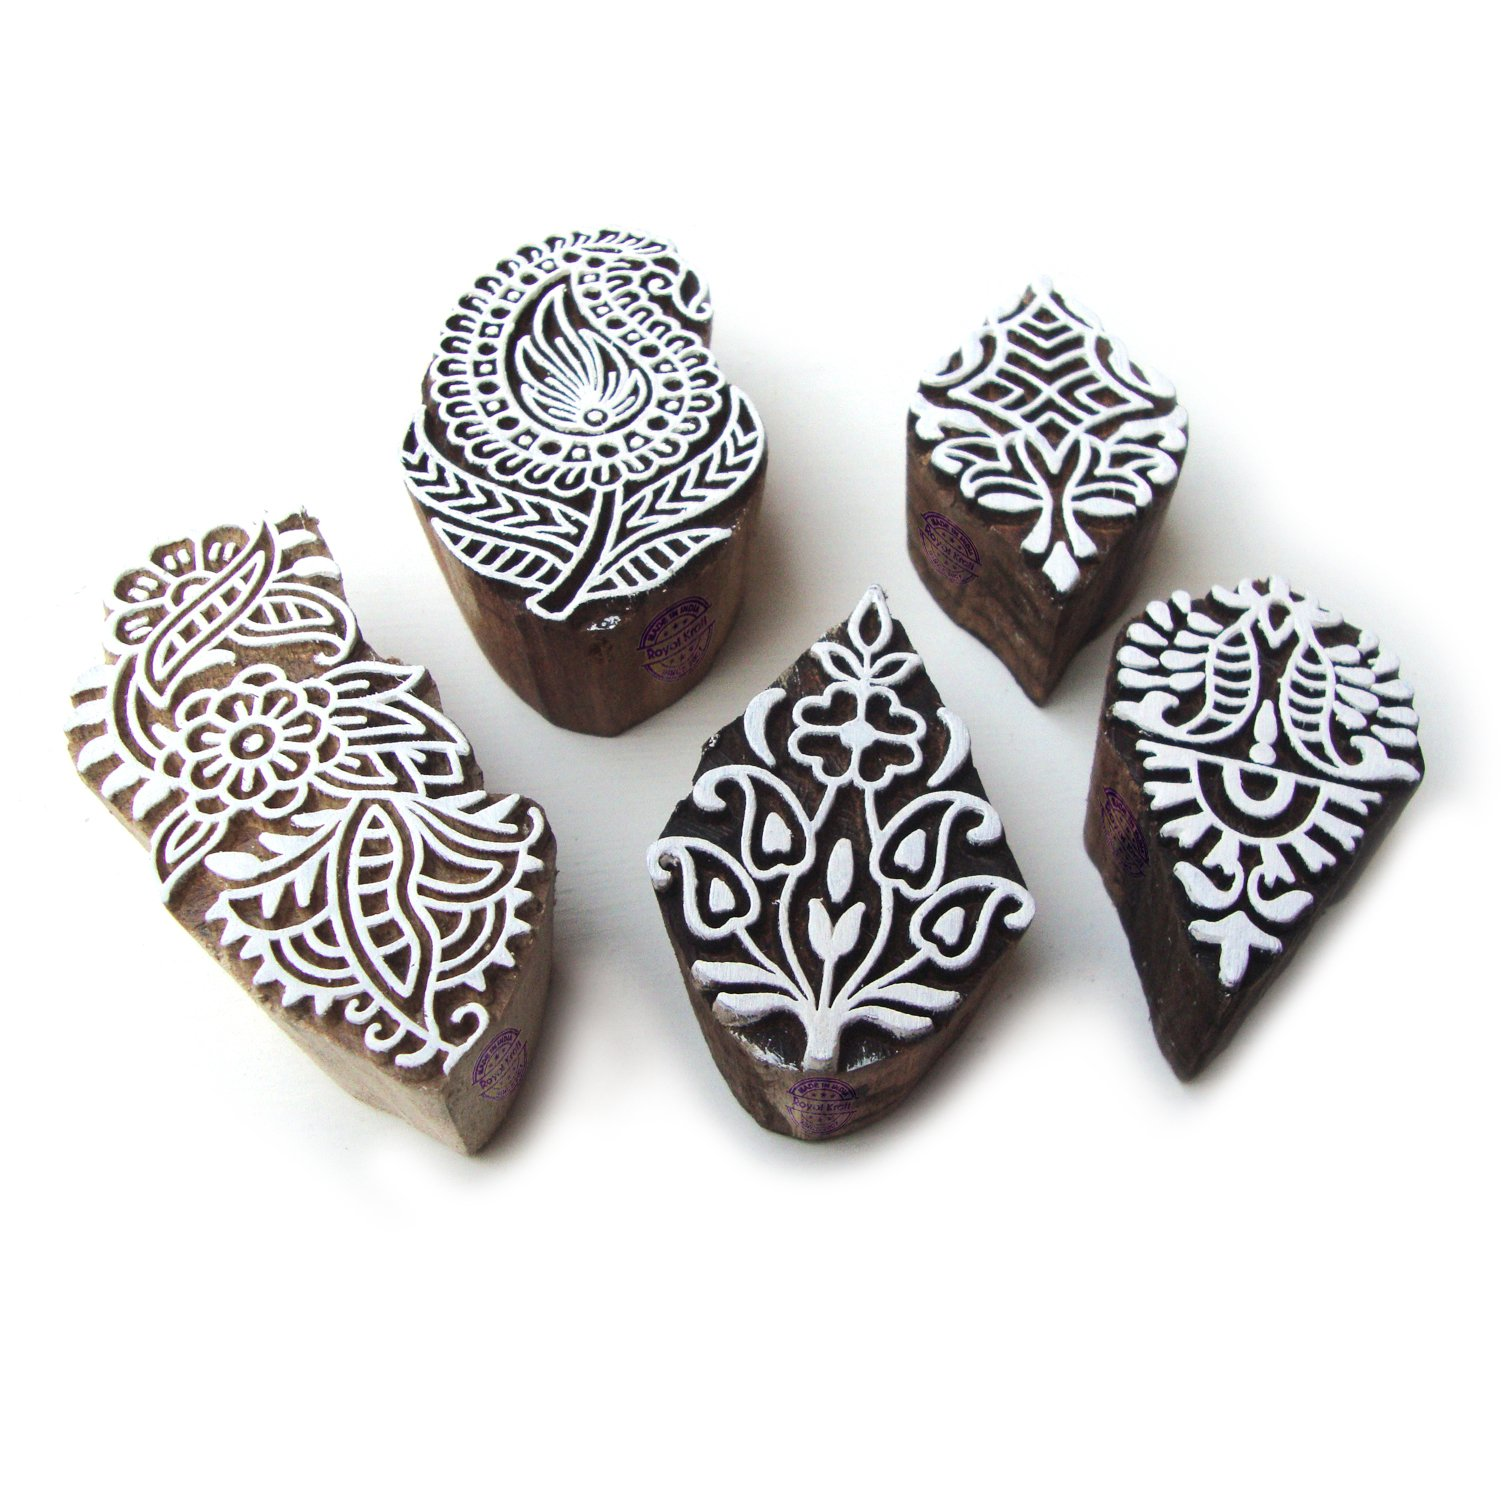 Hand Carved Paisley and Floral Designs Wooden Printing Stamps (Set of 5)